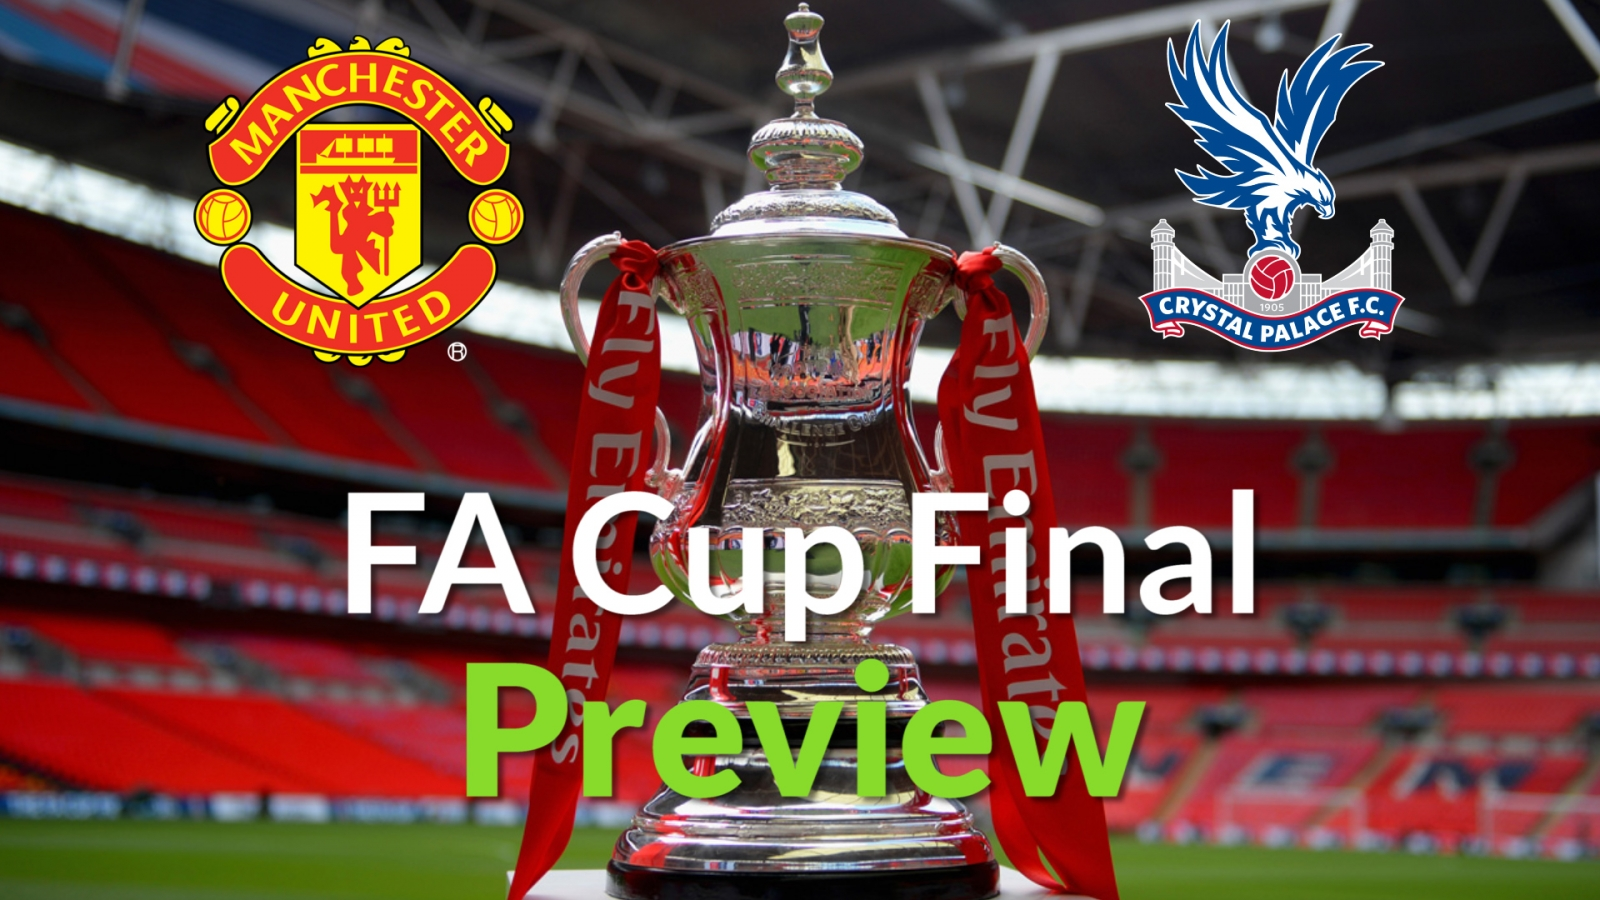 FA Cup Final 2016: Manchester United v Crystal Palace prediction and preview